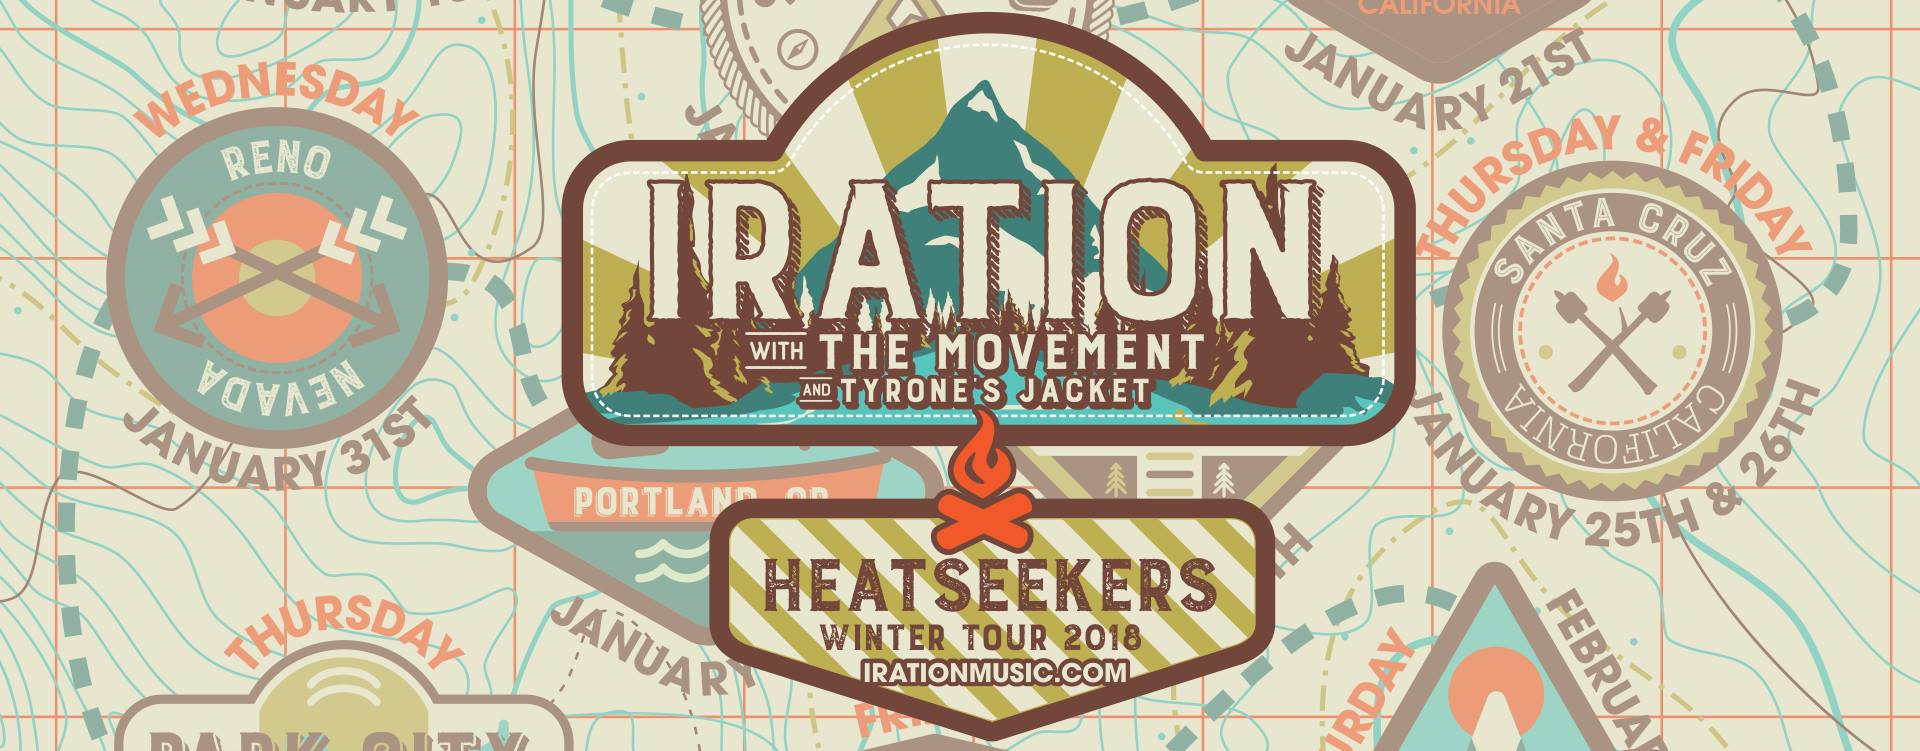 Iration-Fillmore-Auditorium